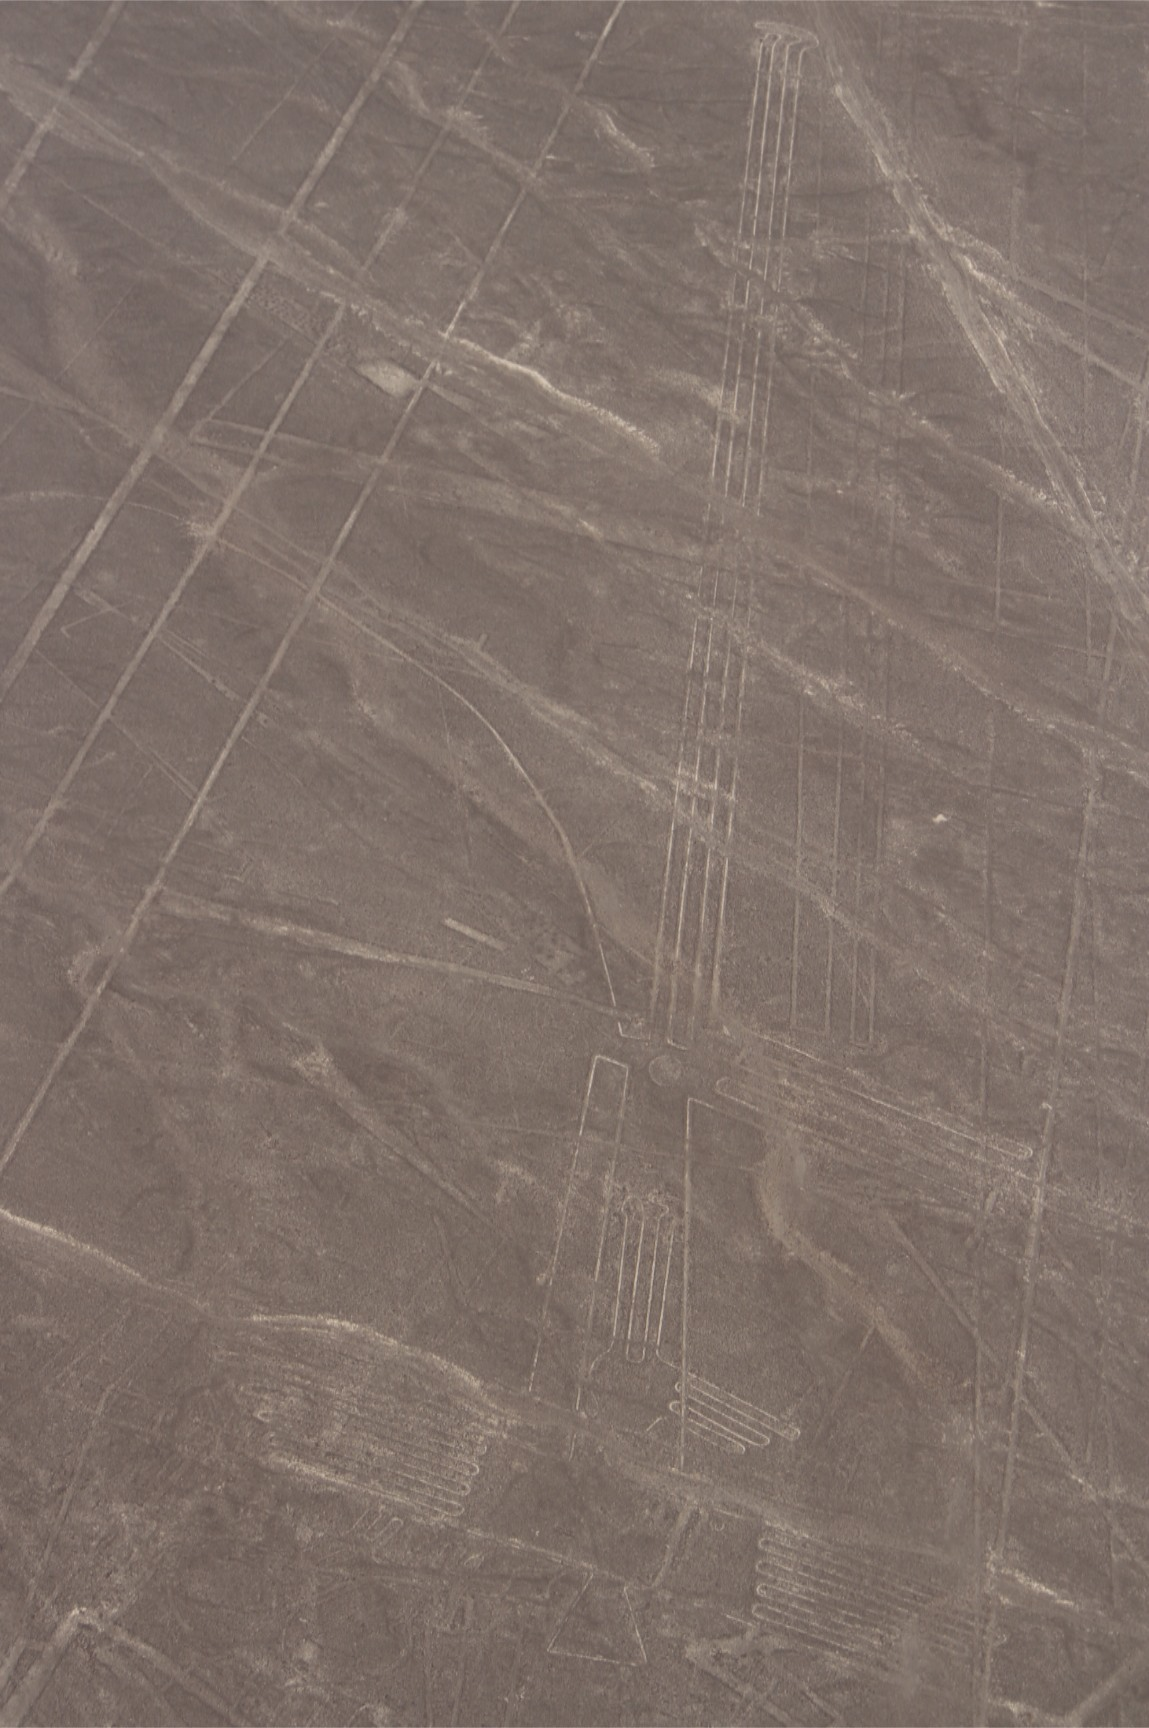 magnificent  mysterious  monumental  the nazca lines of